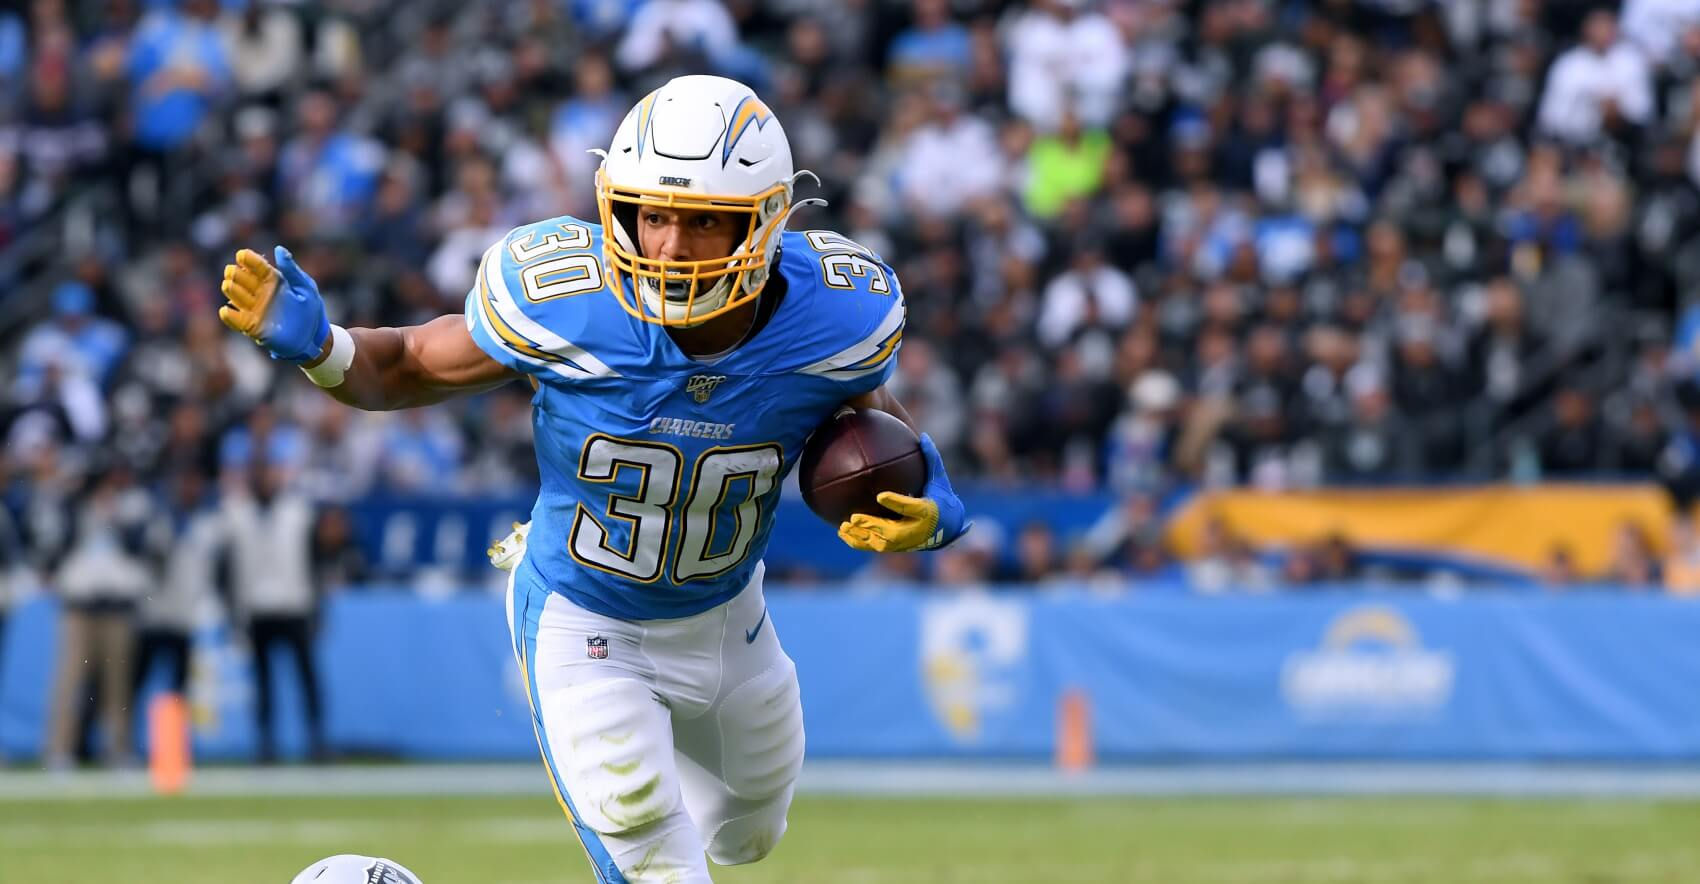 Fantasy Footballers Podcast Recap: The TRUTH about Top Tier Fantasy RBs in 2019